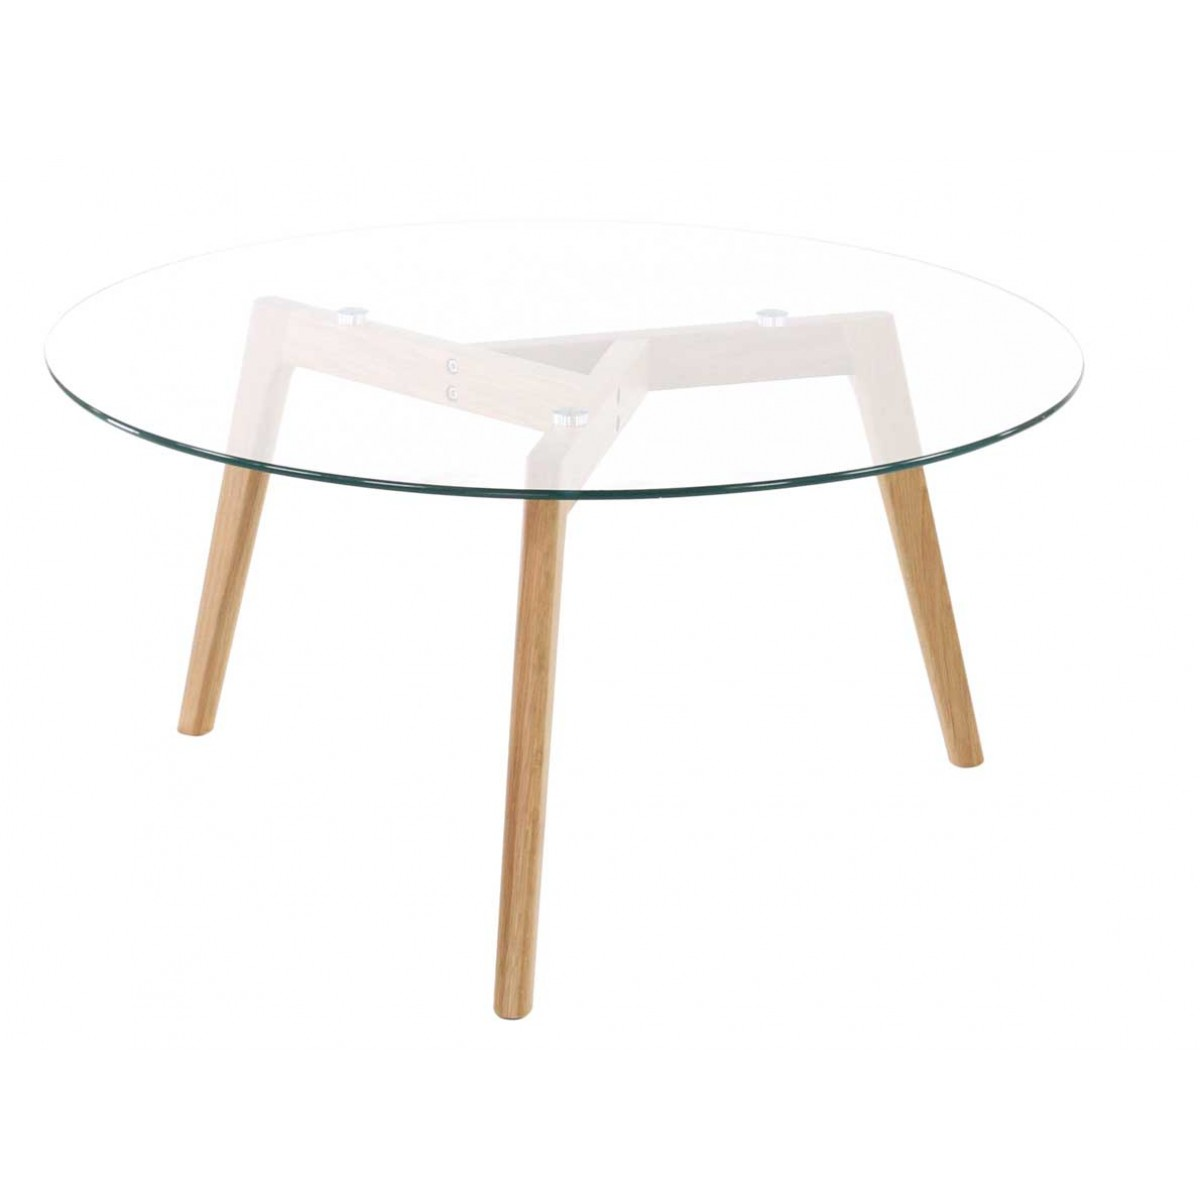 Table basse en verre ronde design scandie mooviin for Table basse bois et verre